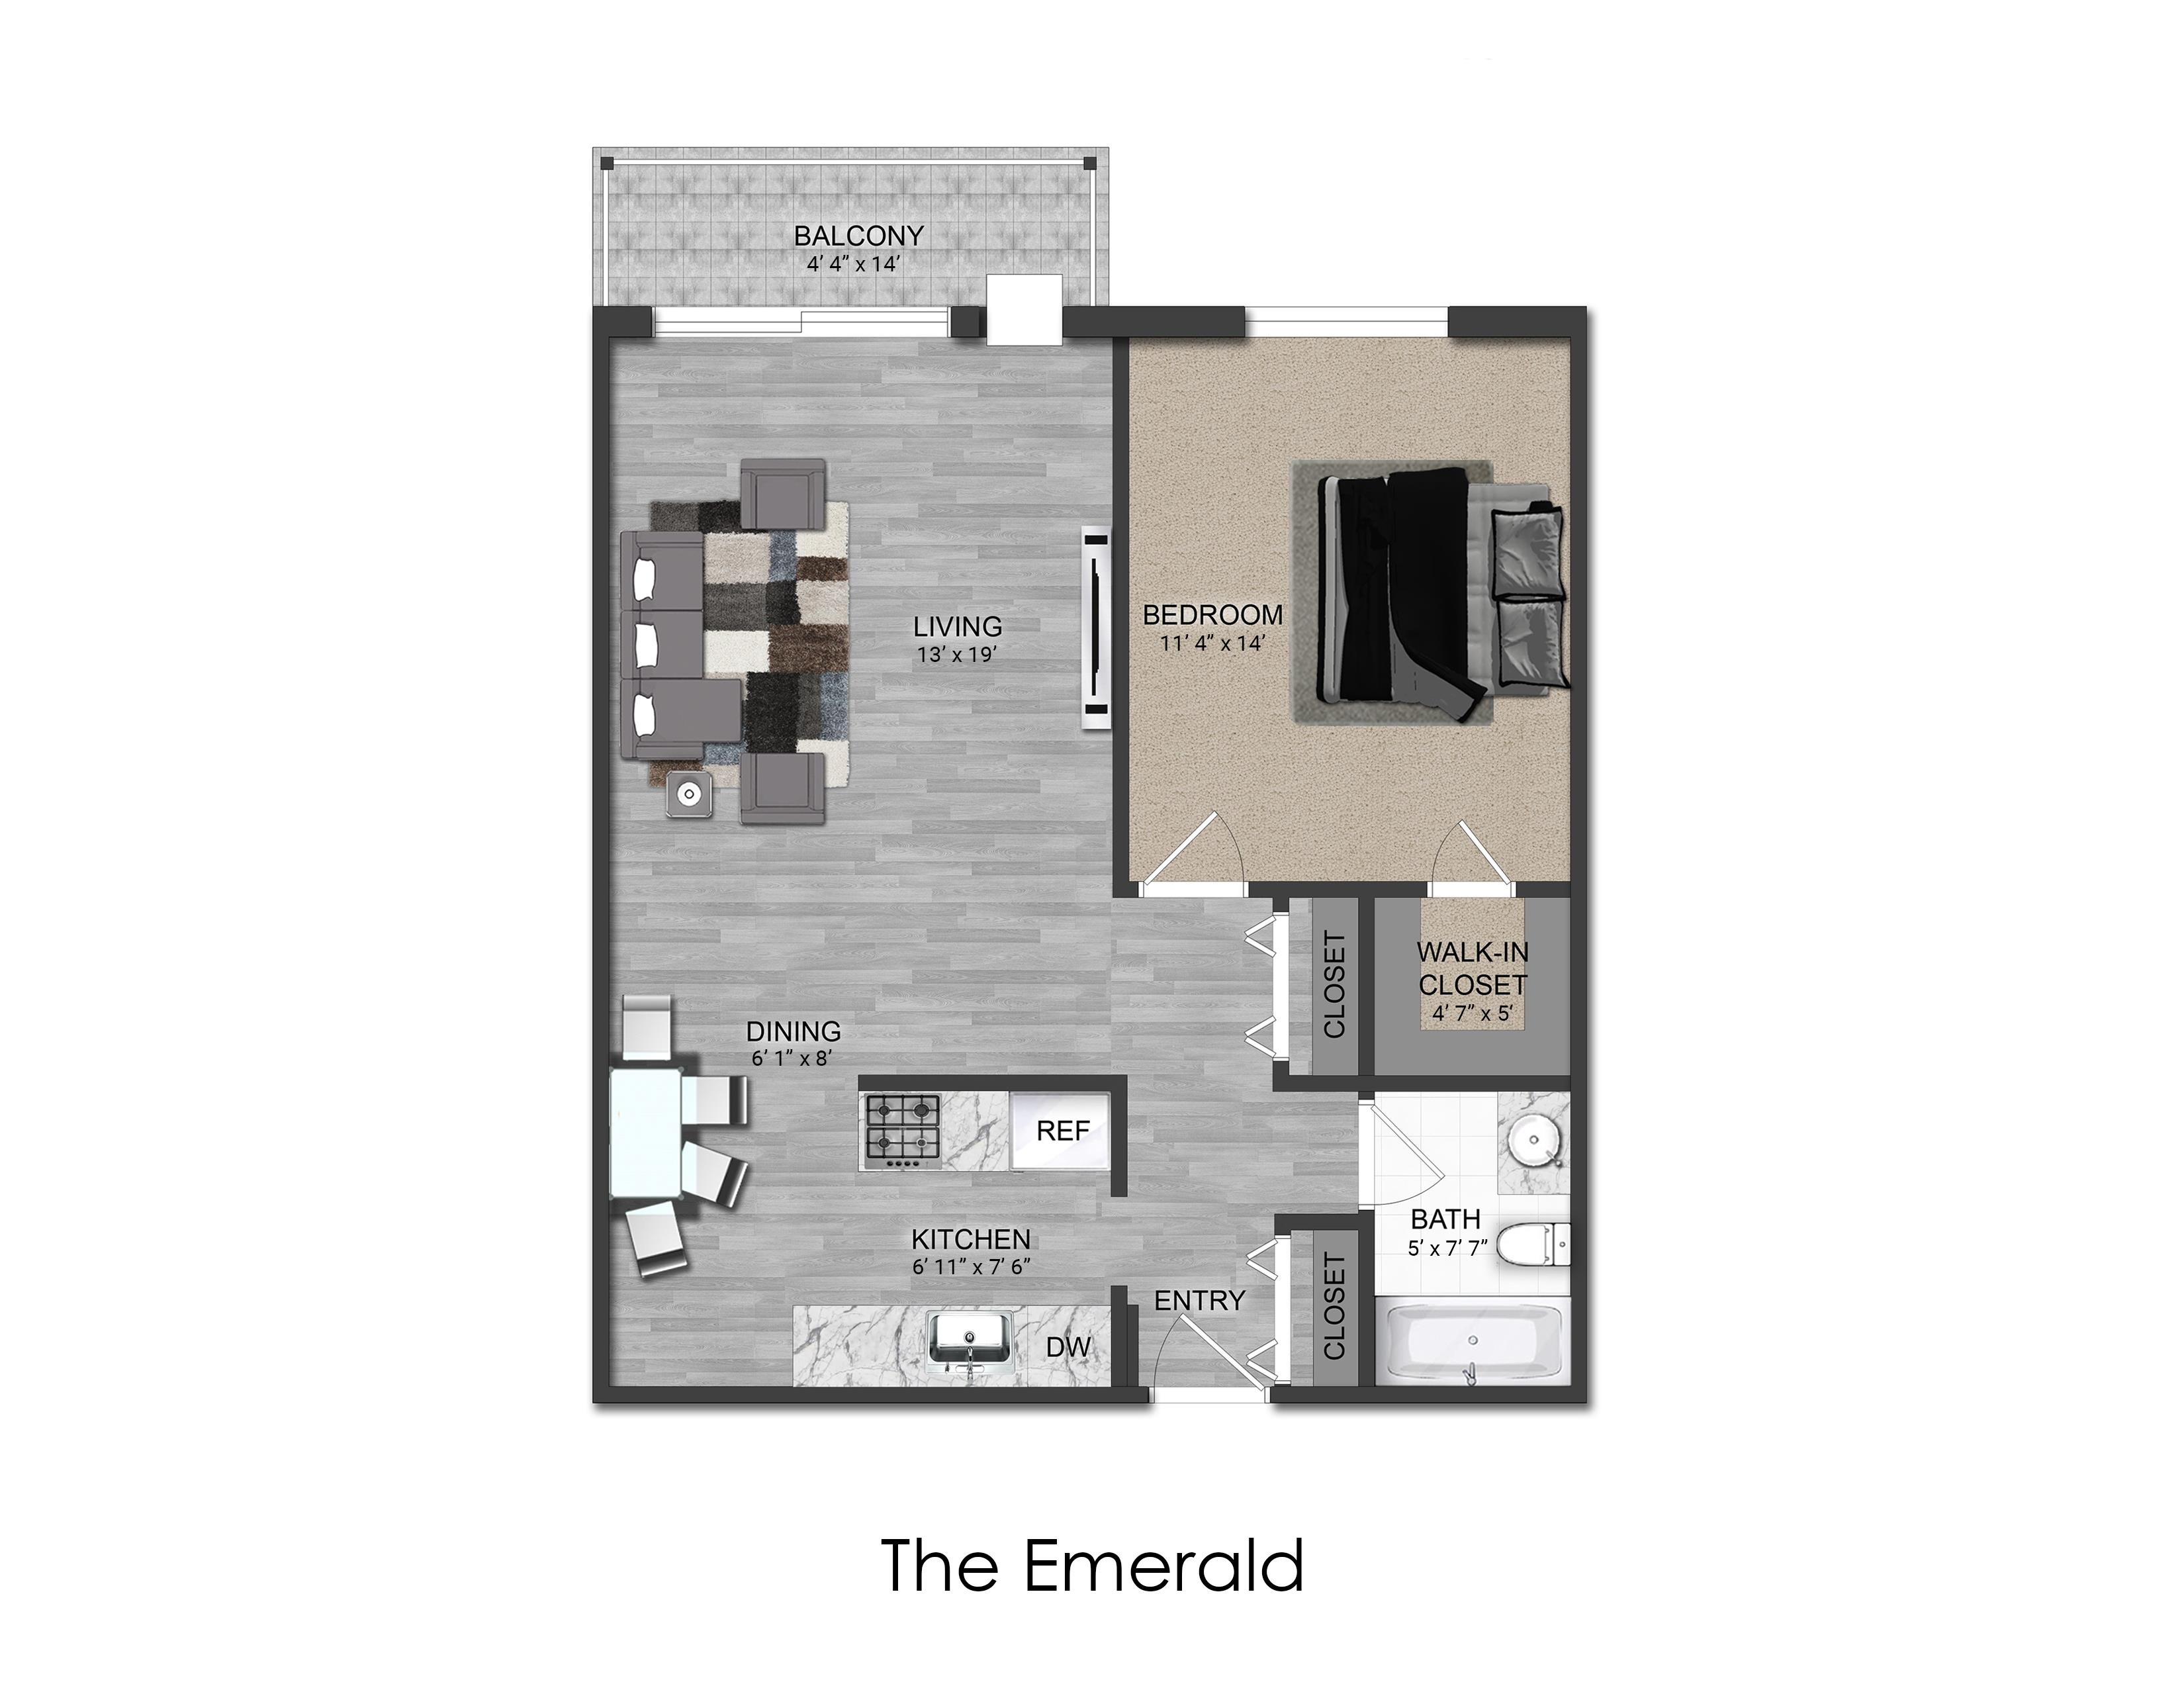 Image of 7601 32nd Ave N, # 13